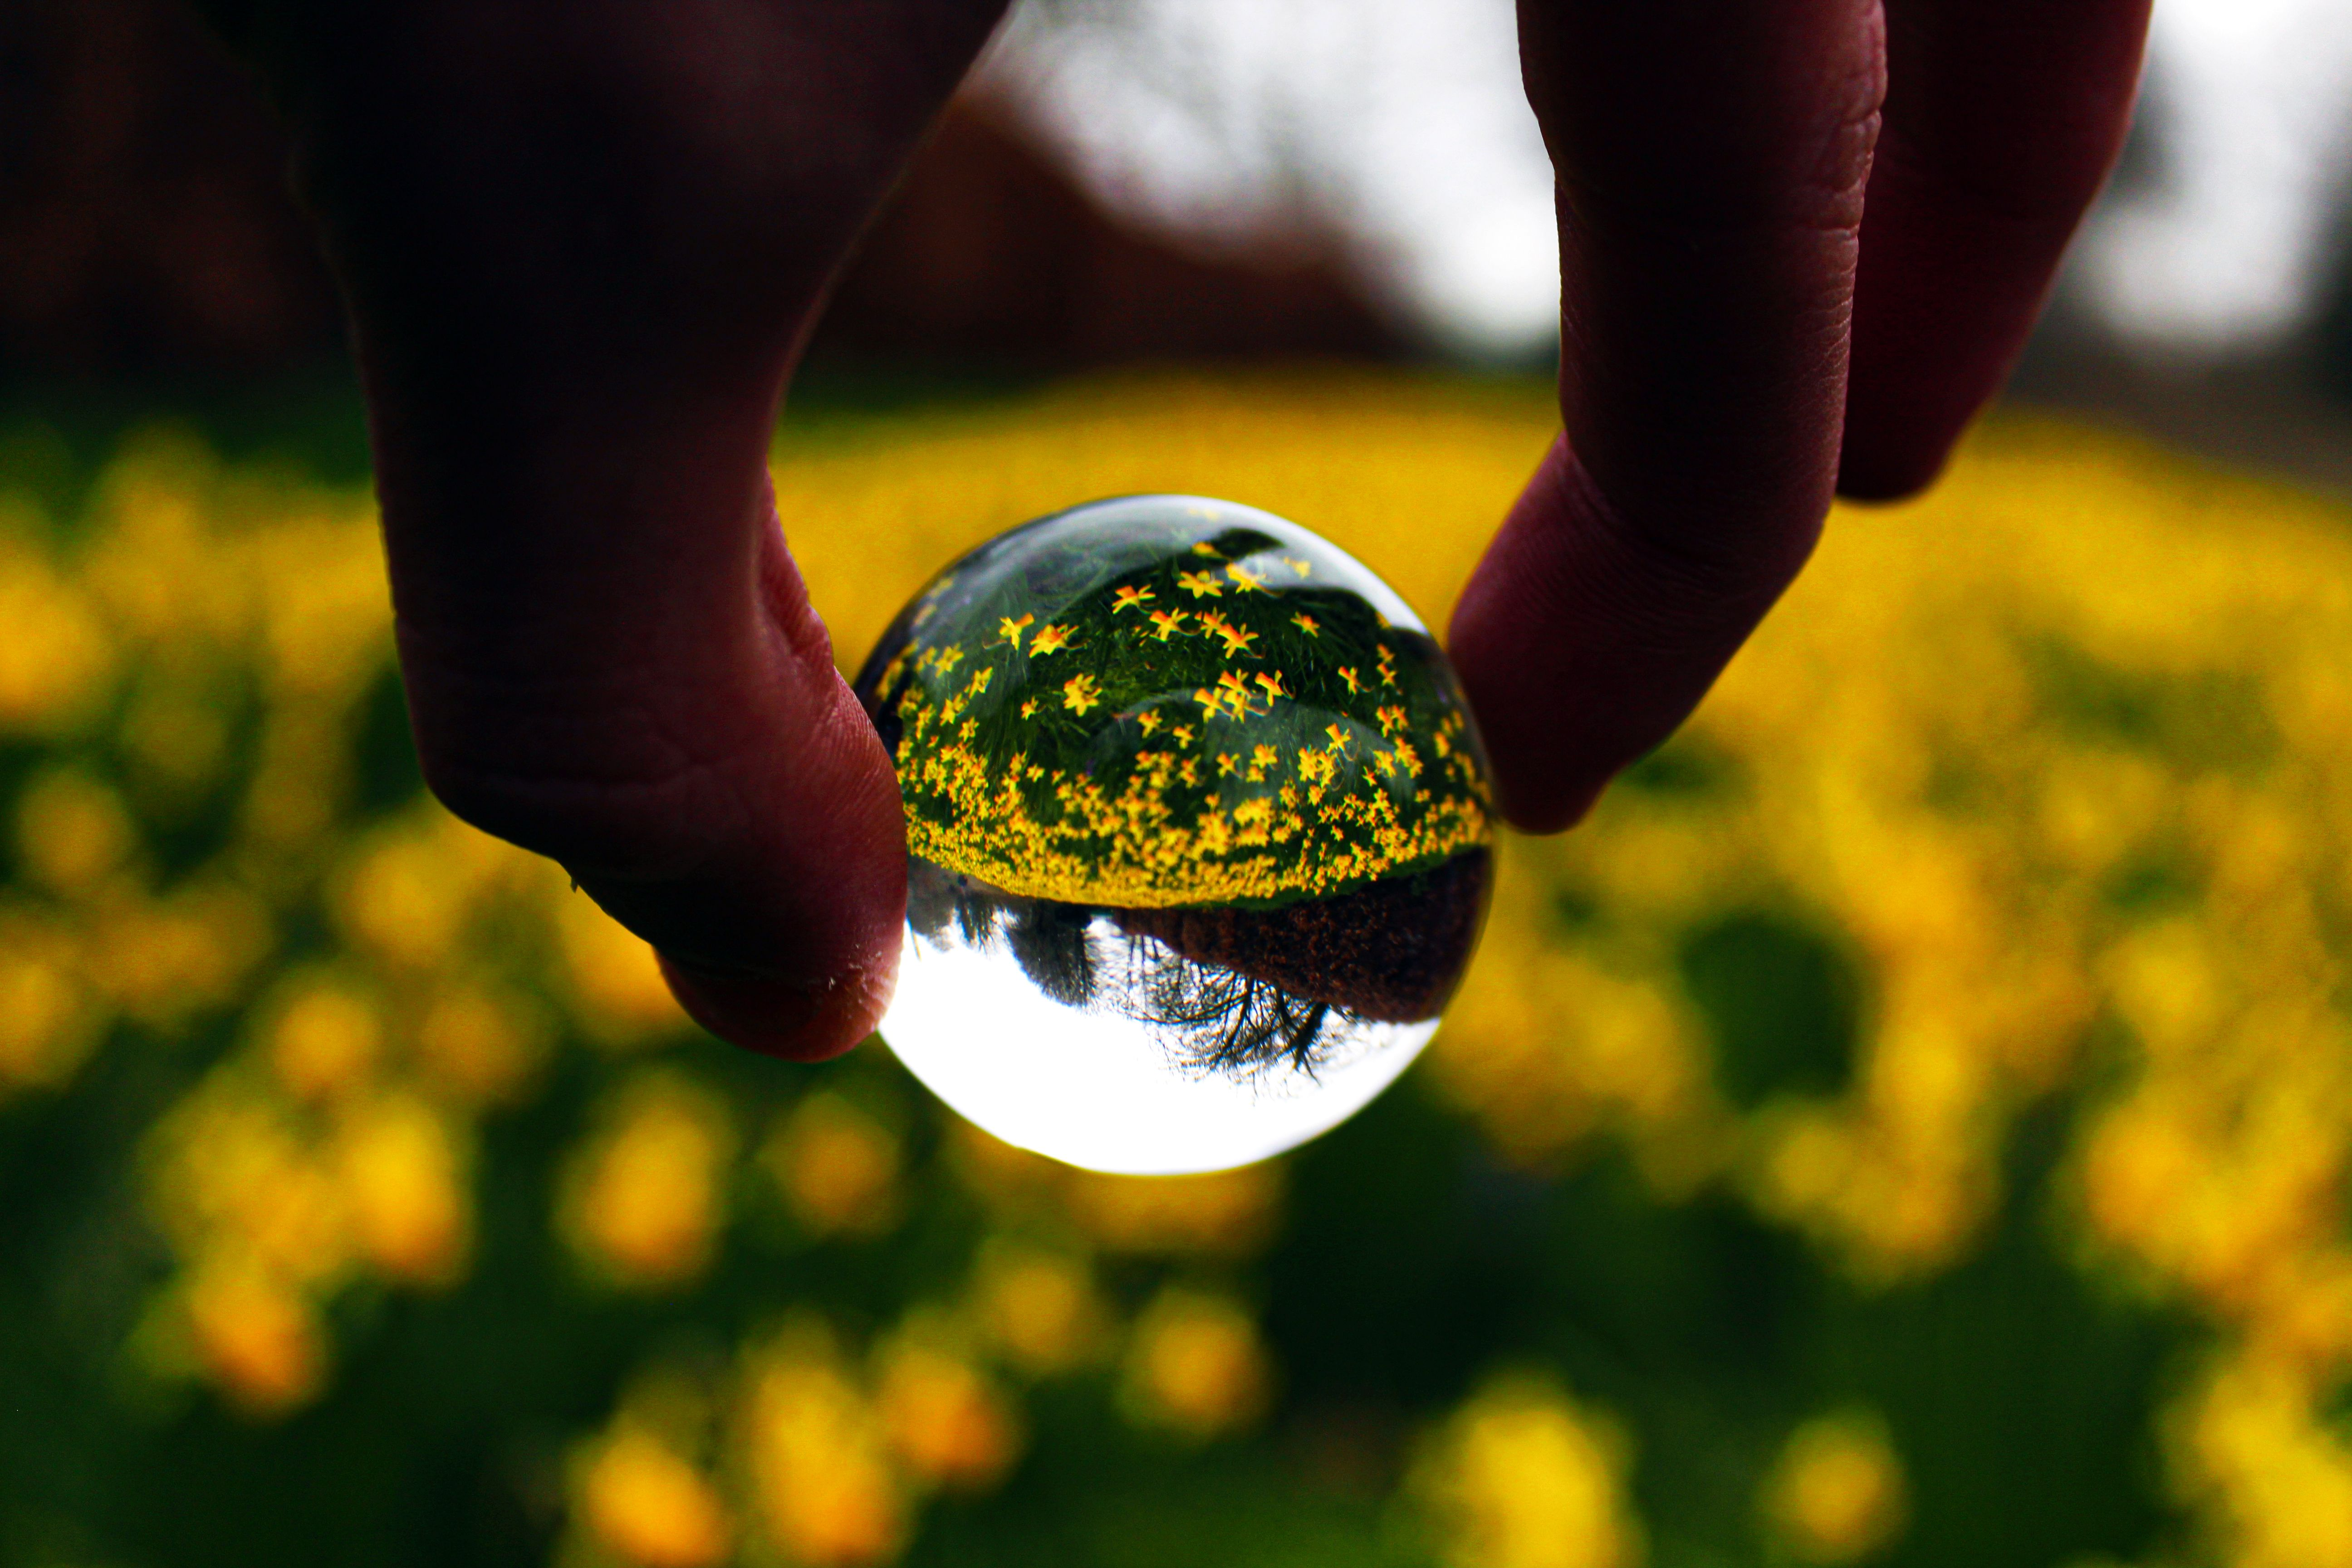 Had so much fun shooting through one of these. I recommend photographers buying this if you want to try new things  #photography #naturephotography #nature #flowers #crystalball #trynewthings #contrast